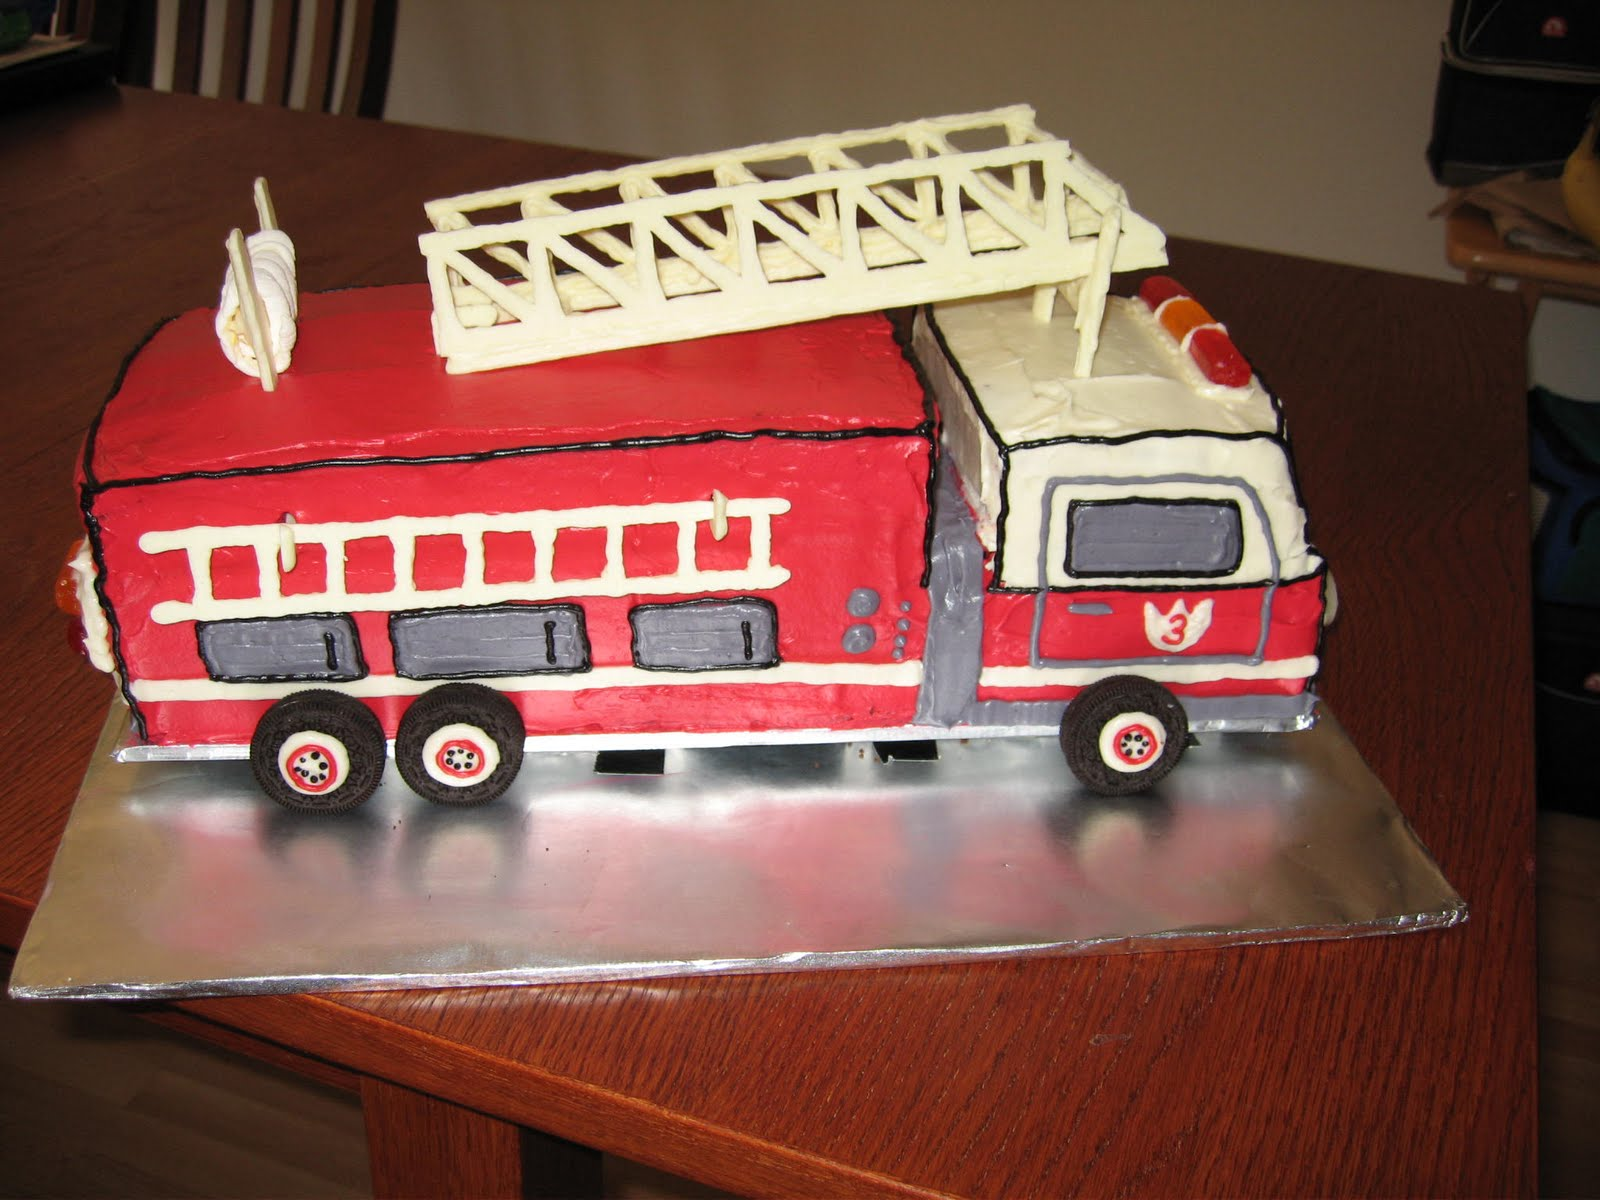 Fire Truck Cake Design : Birthday Cake: Fire Truck Birthday Cakes